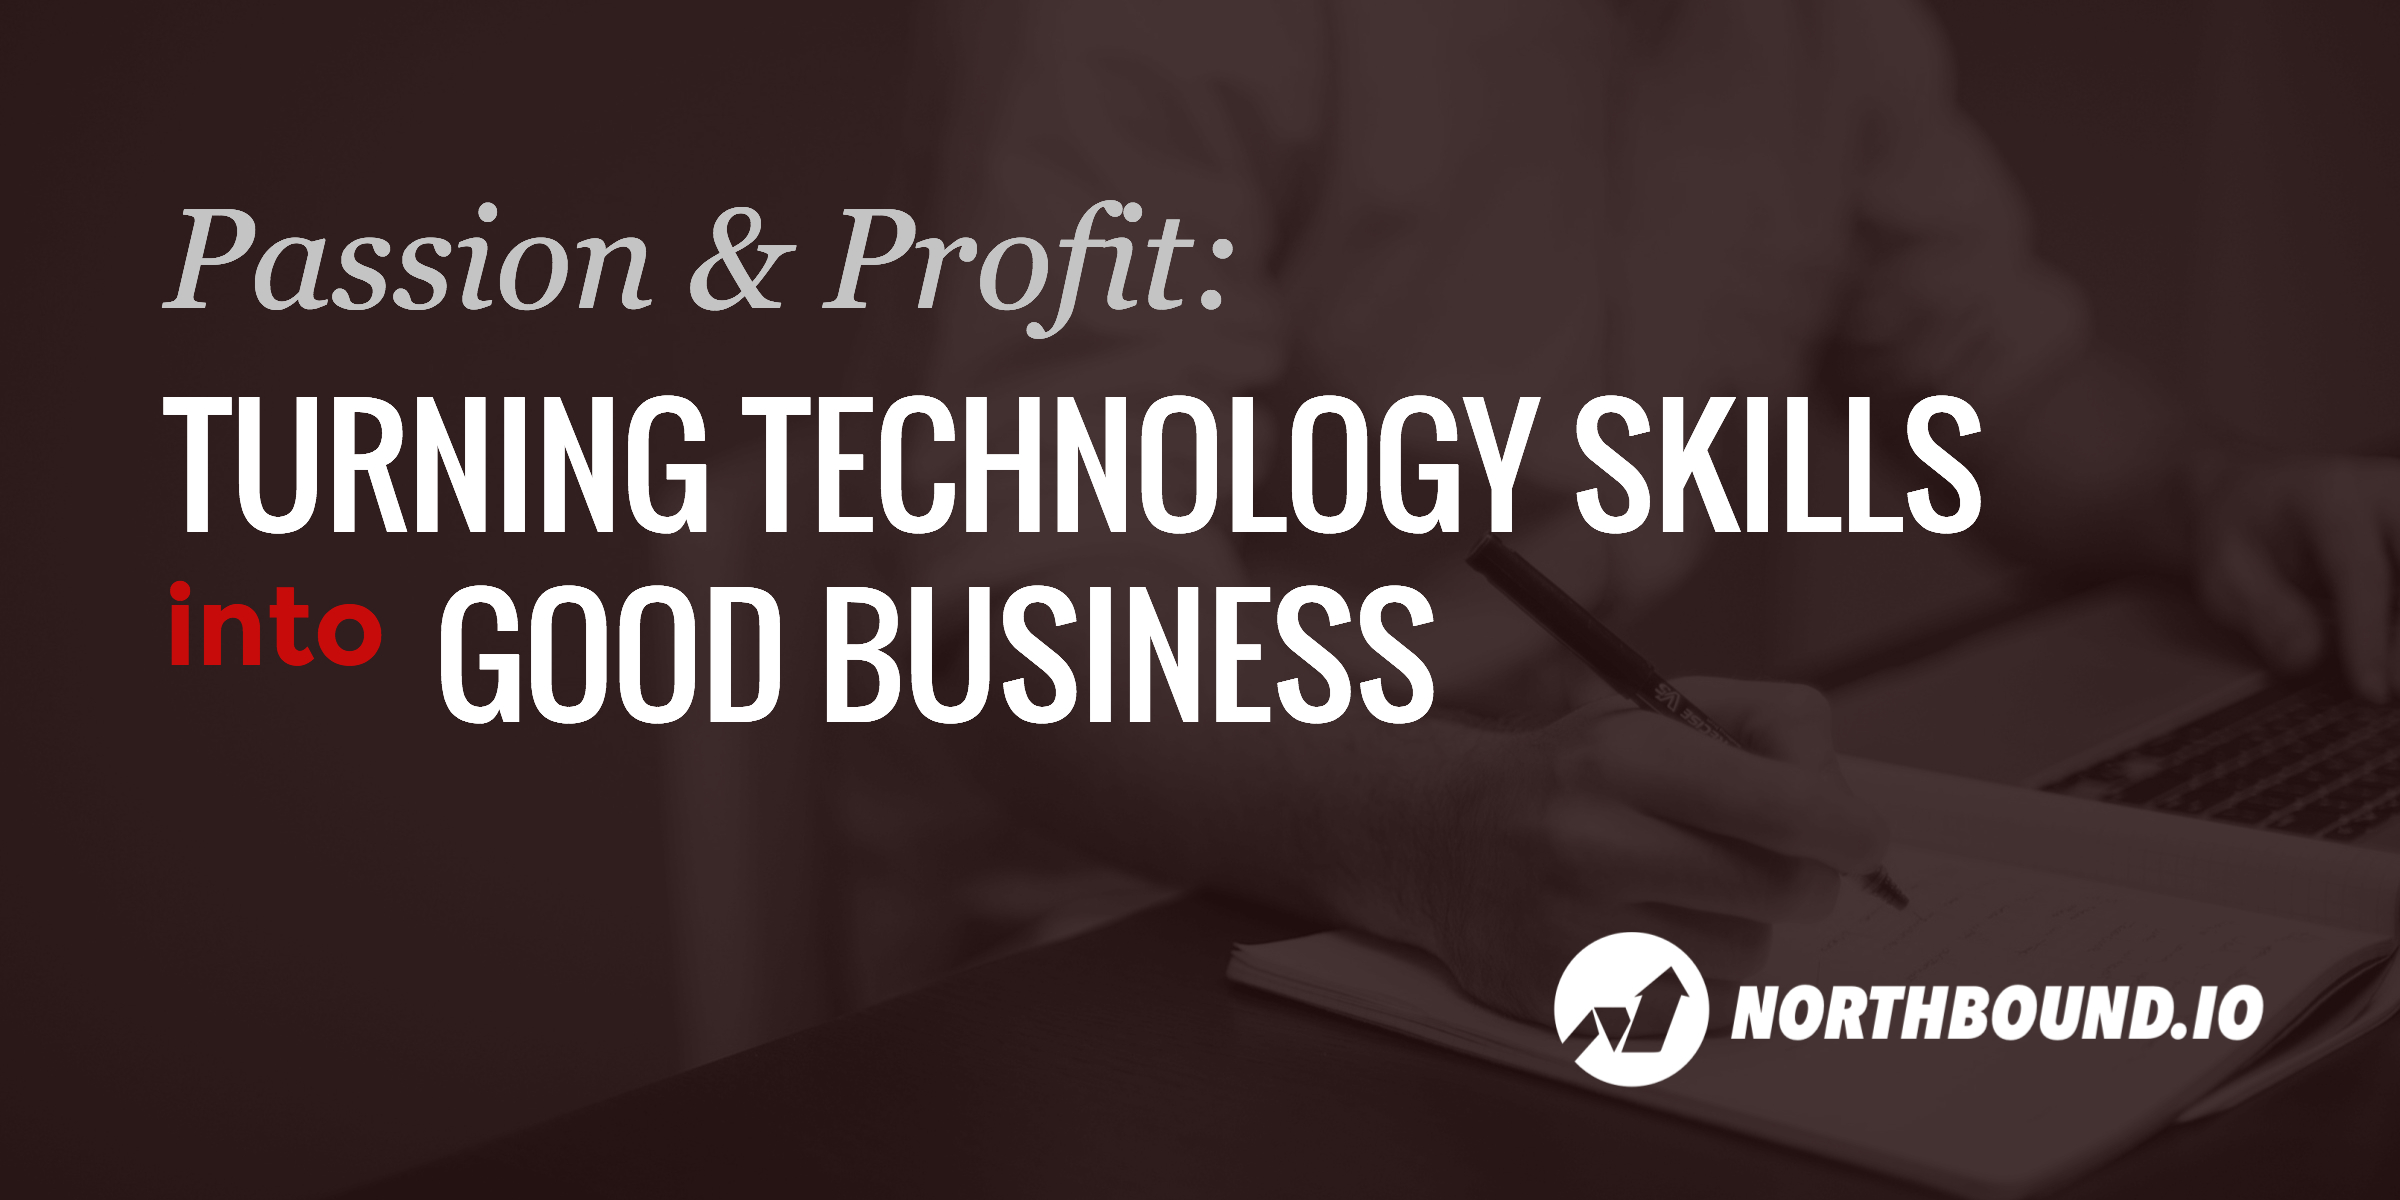 Passion & Profit: Turning Technology Skills into Good Business